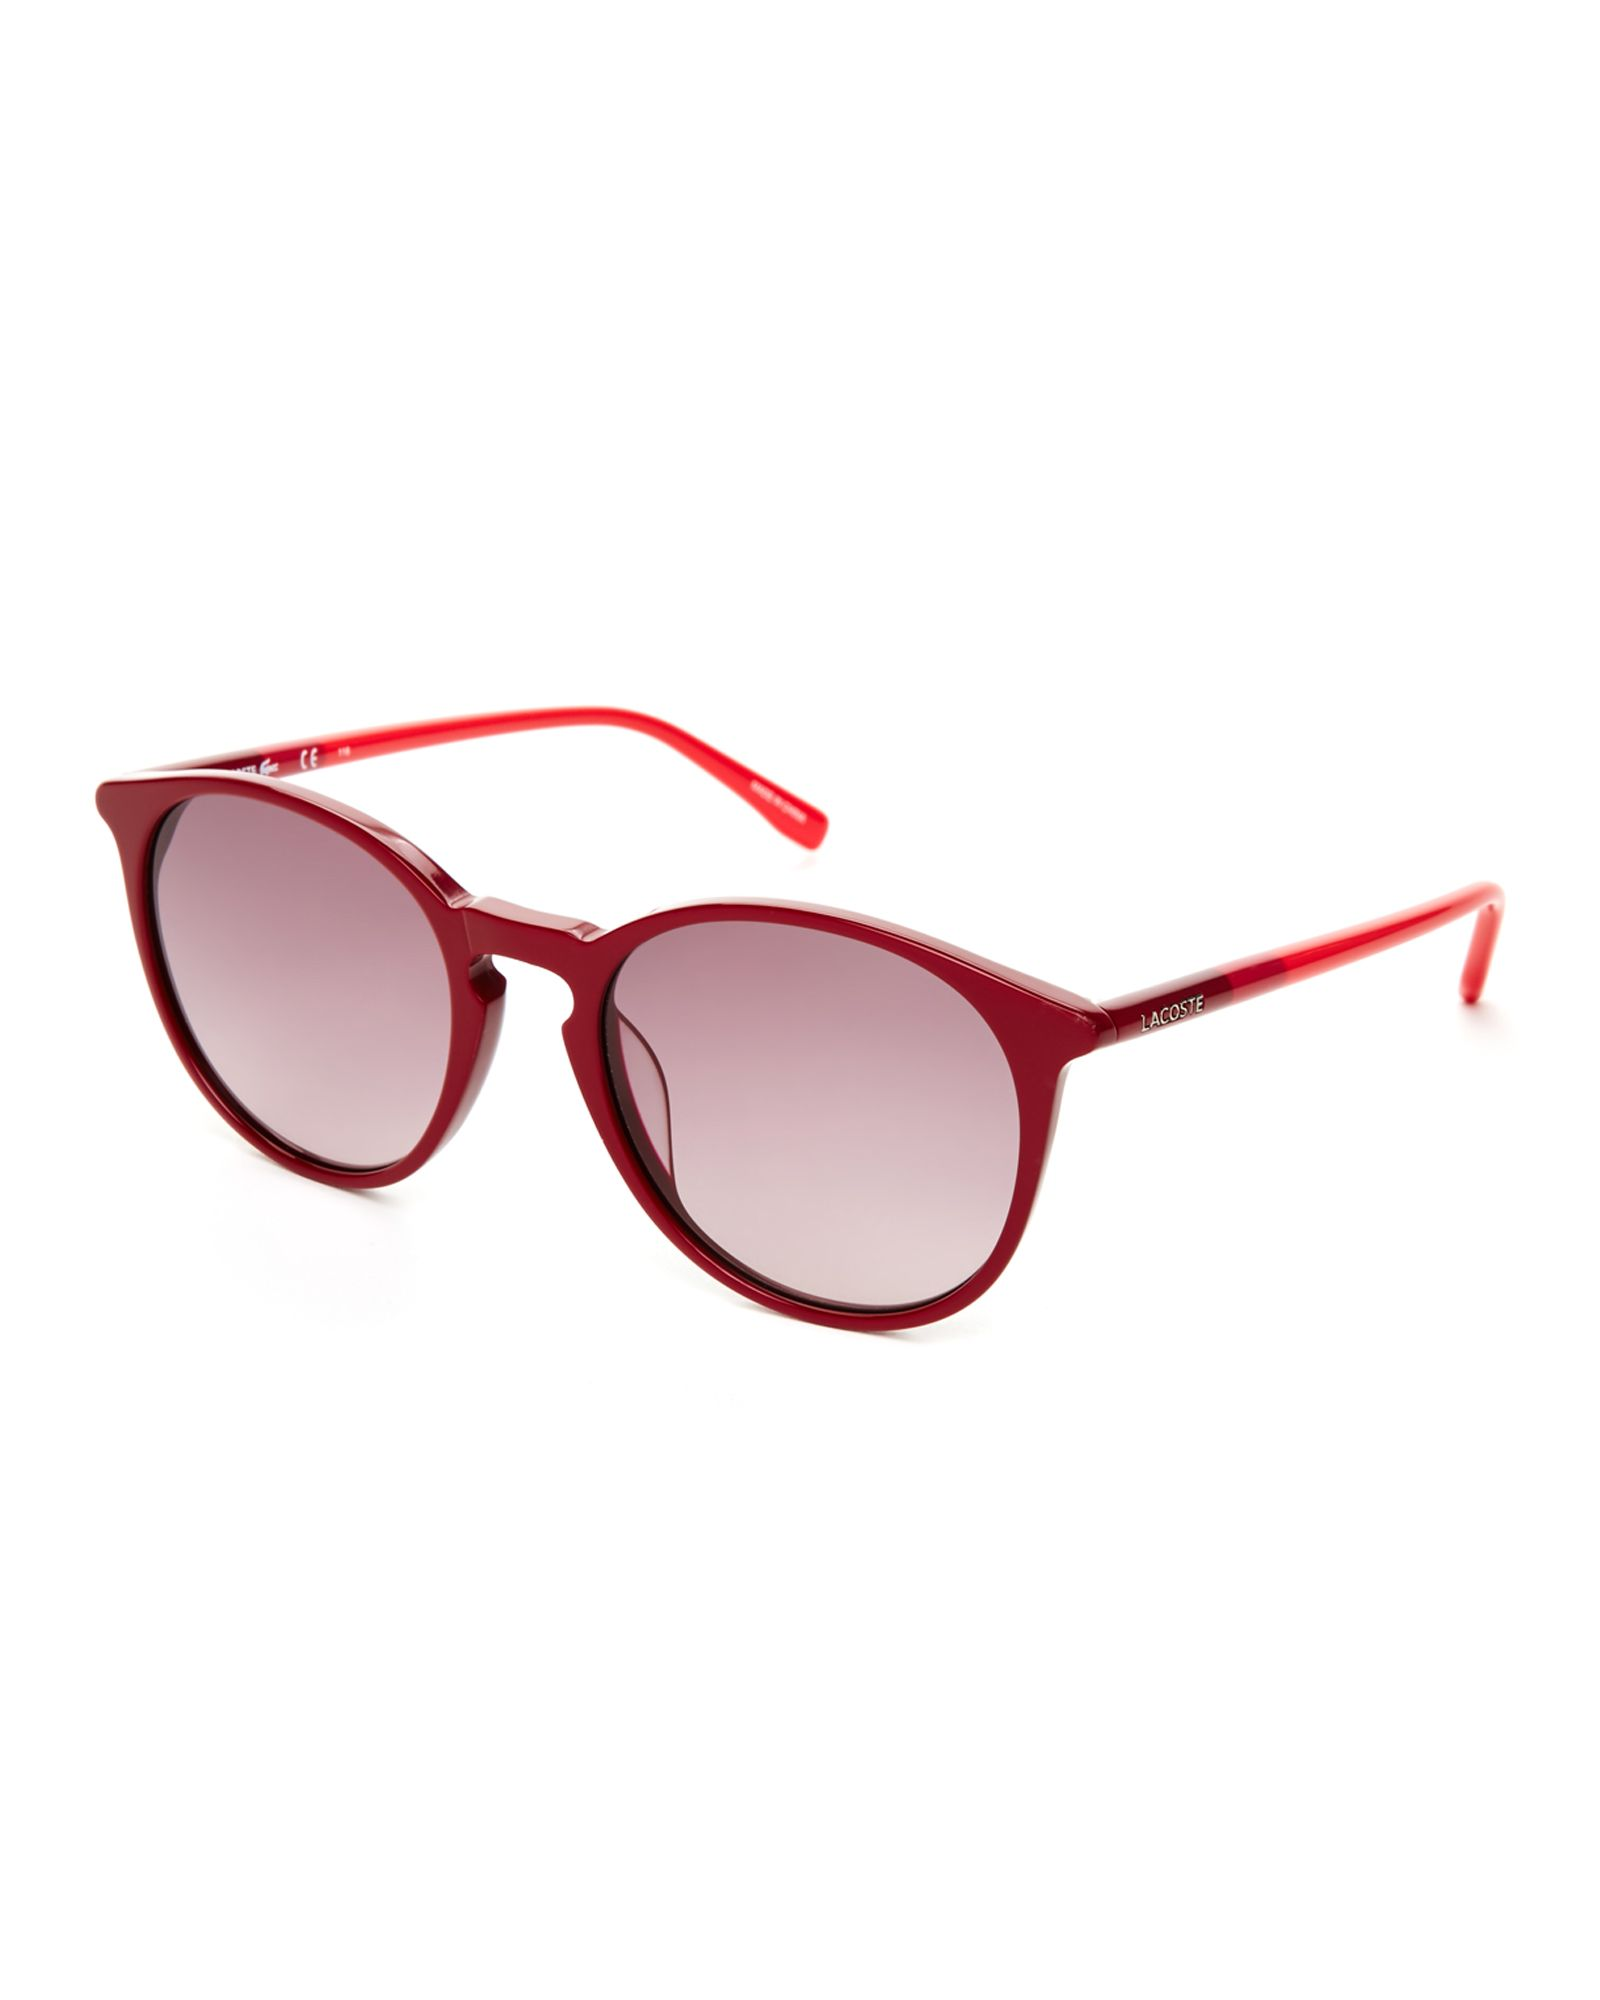 420e8f504db Lacoste Red L786S Retro Round Sunglasses